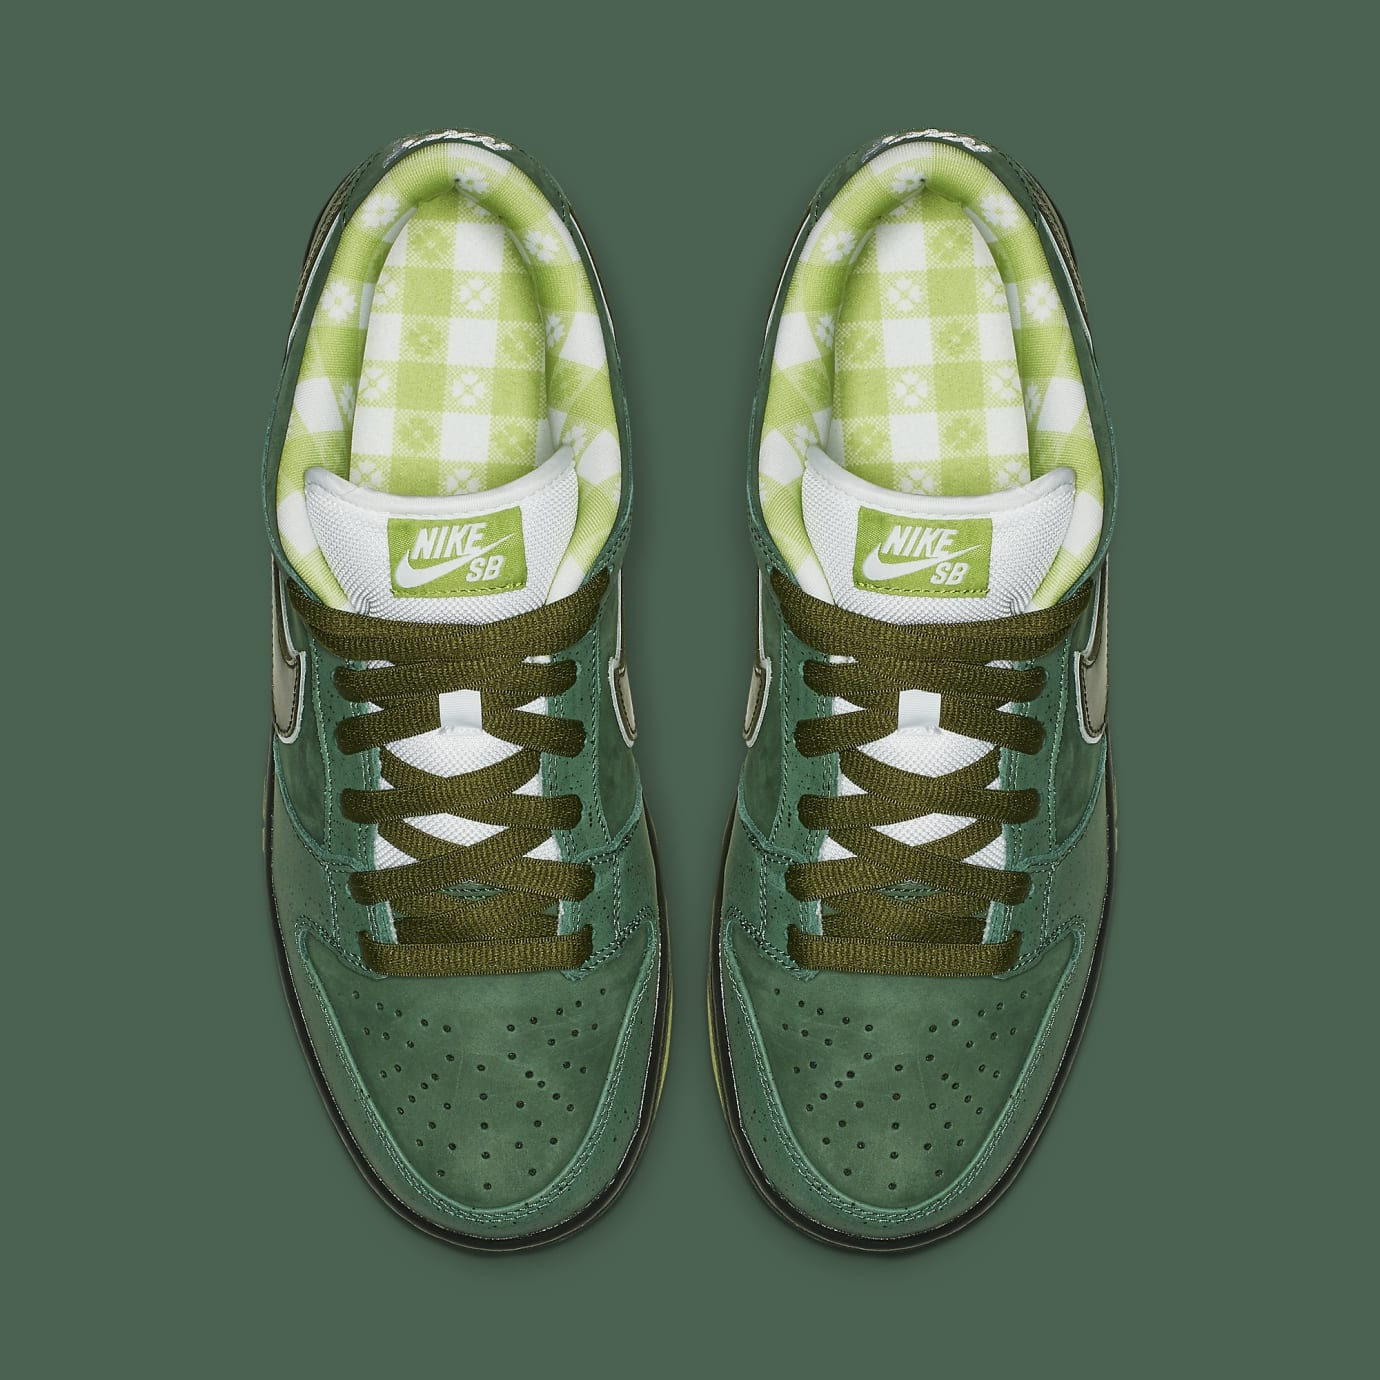 nike-sb-dunk-low-green-lobster-release-date-bv1310-337-top